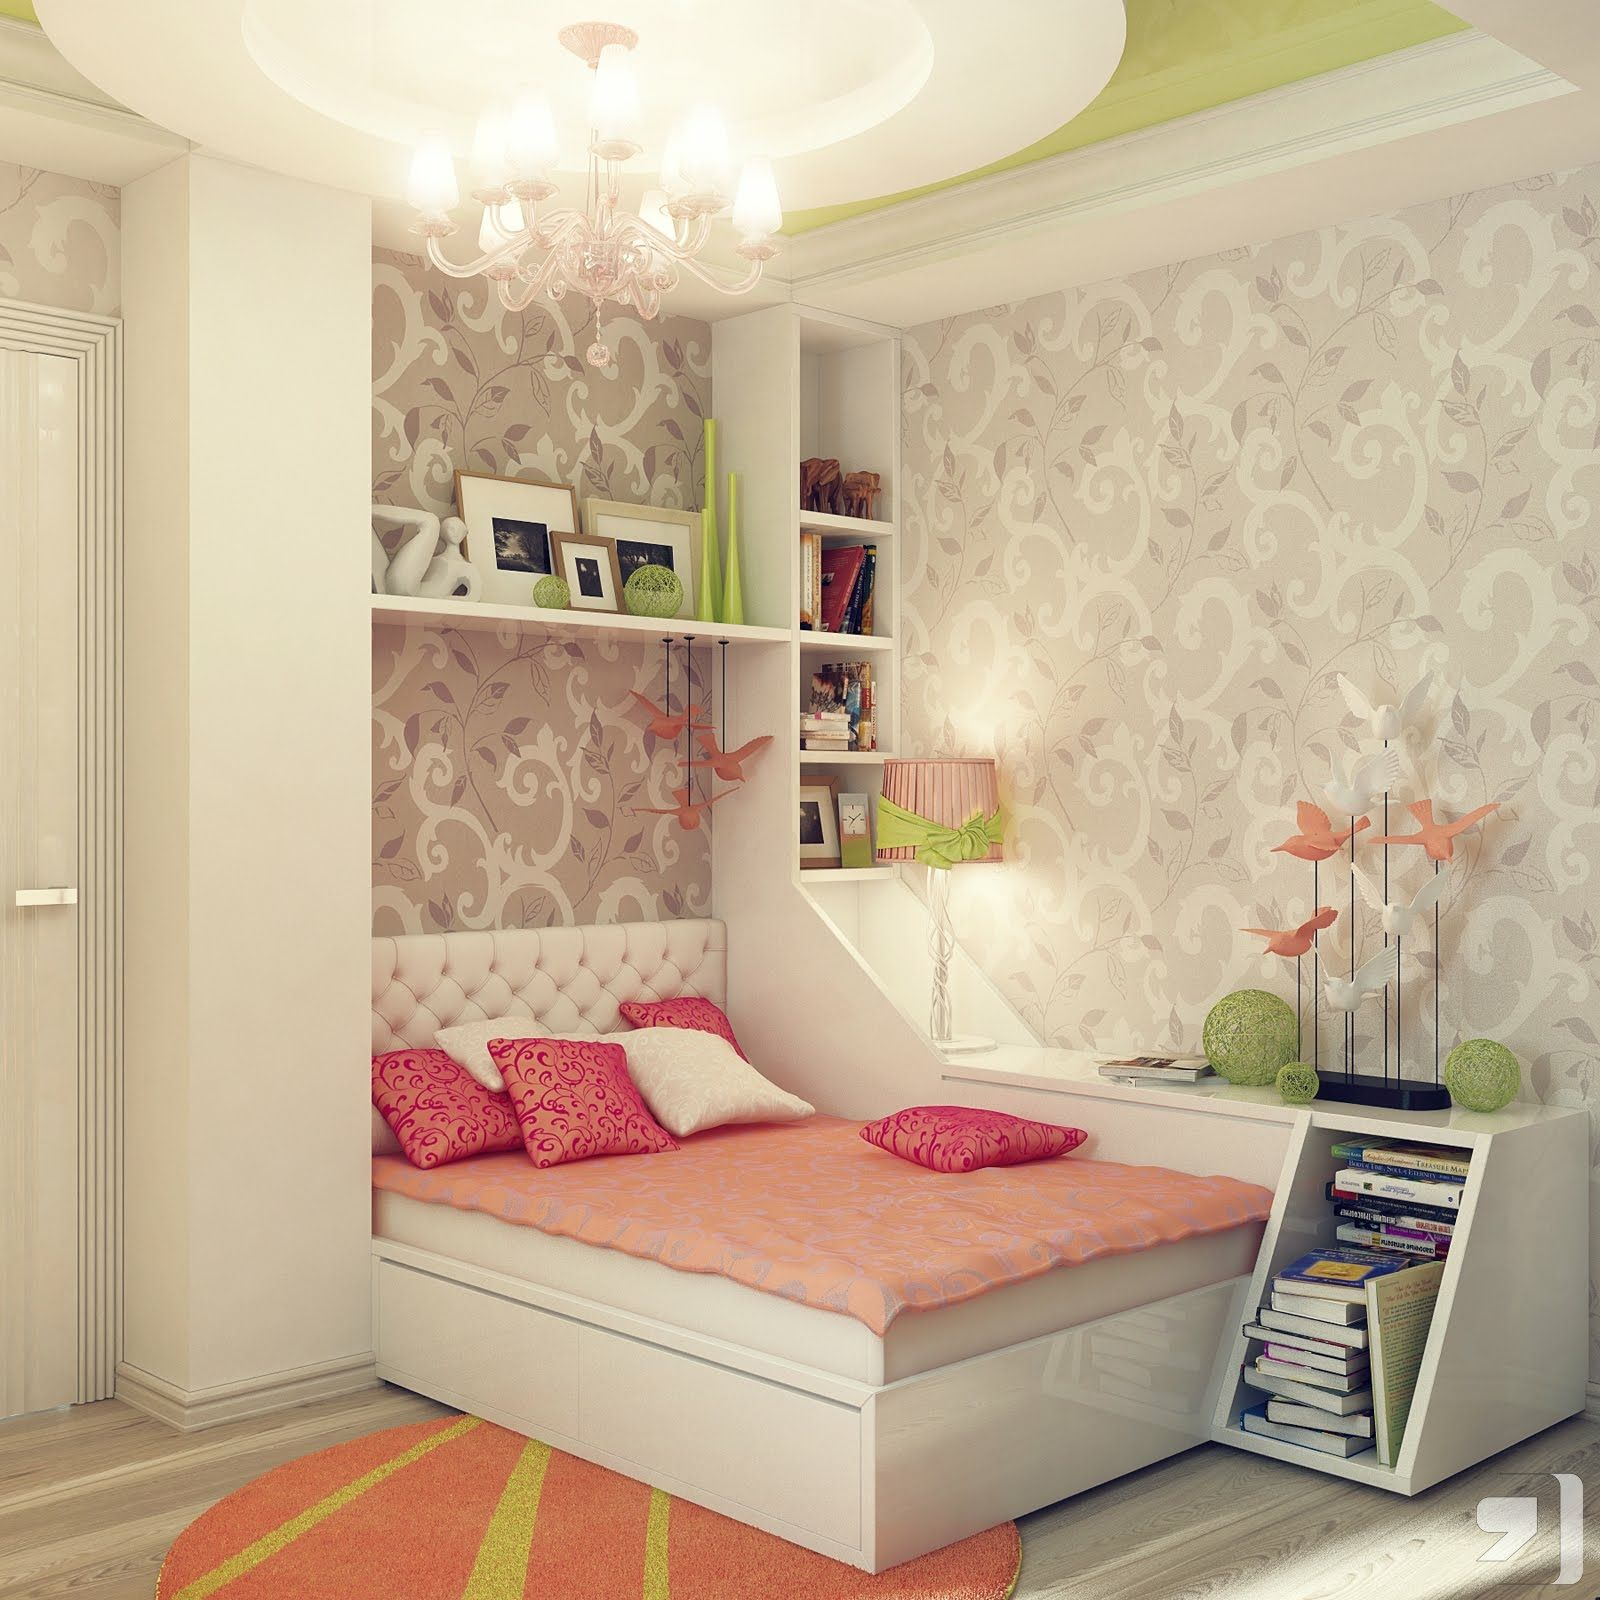 Decorating A Bedroom Theme For Girl With Princess HOME DESIGN